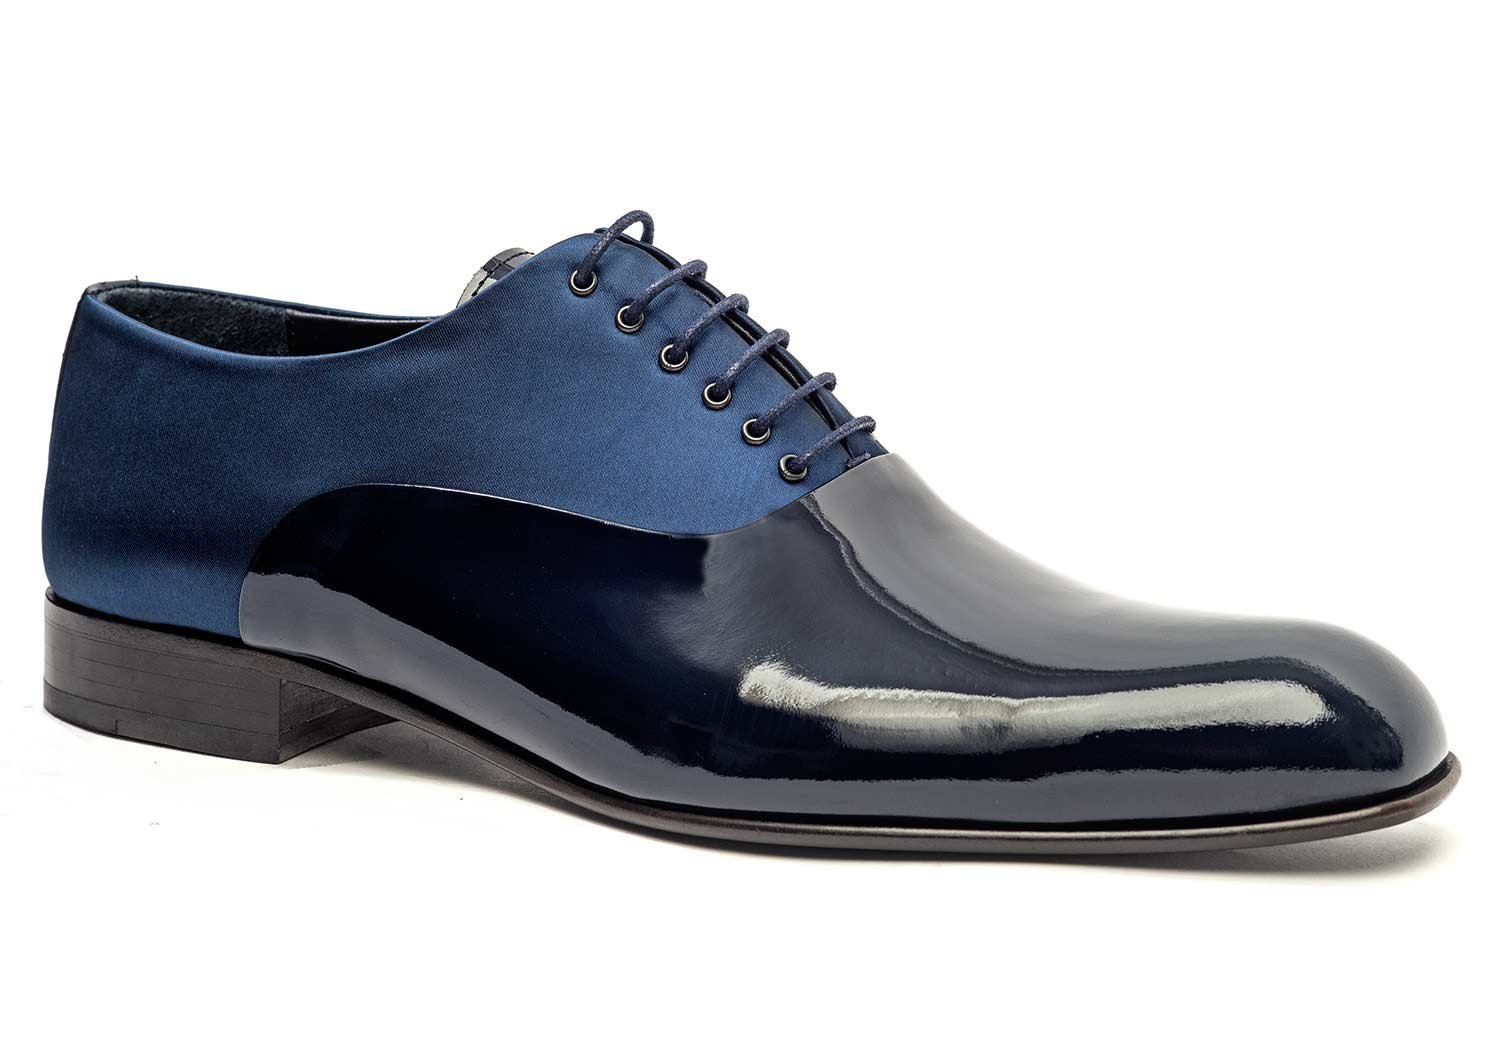 Navy Satin and Patent Leather Dress Shoes for Men -side 51105-NV - Jared Lang